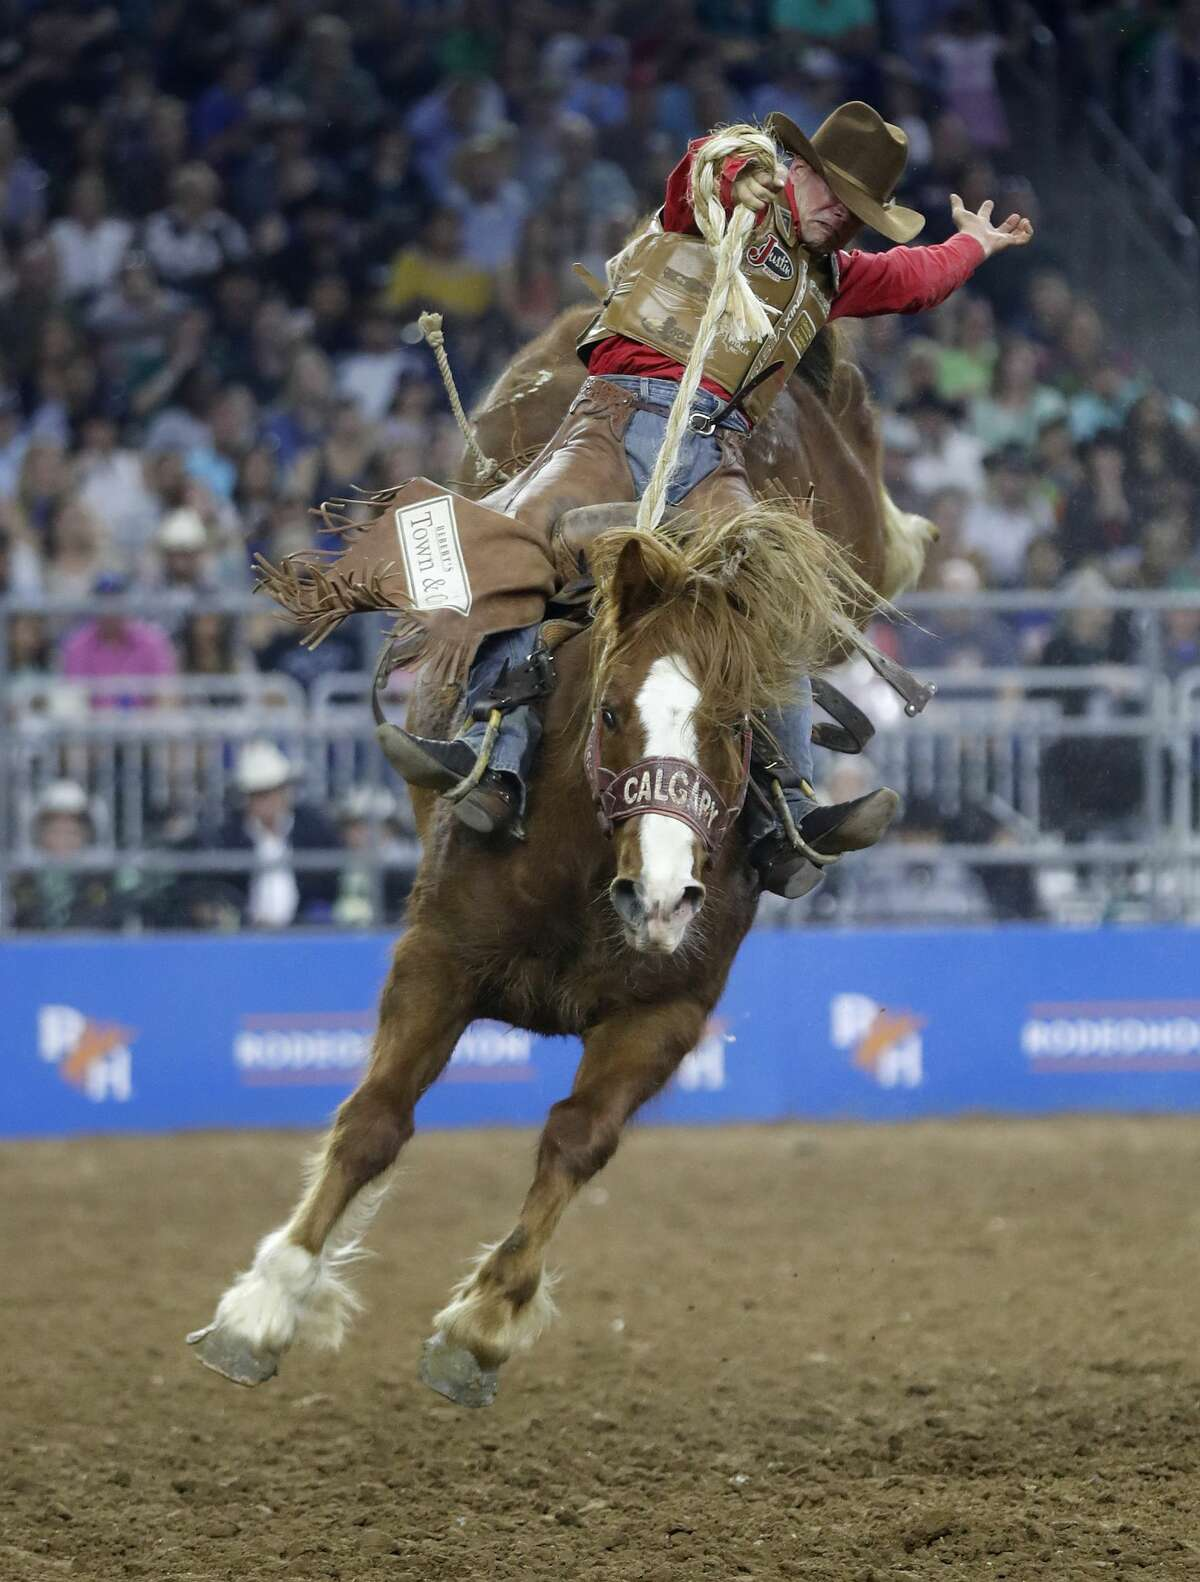 Cody DeMoss scores a 92.0 on his Saddle Bronc ride during the Super Series Championship at the Houston Livestock Show and Rodeo at NRG Stadium, Saturday, March 17, 2018, in Houston. ( Karen Warren / Houston Chronicle )